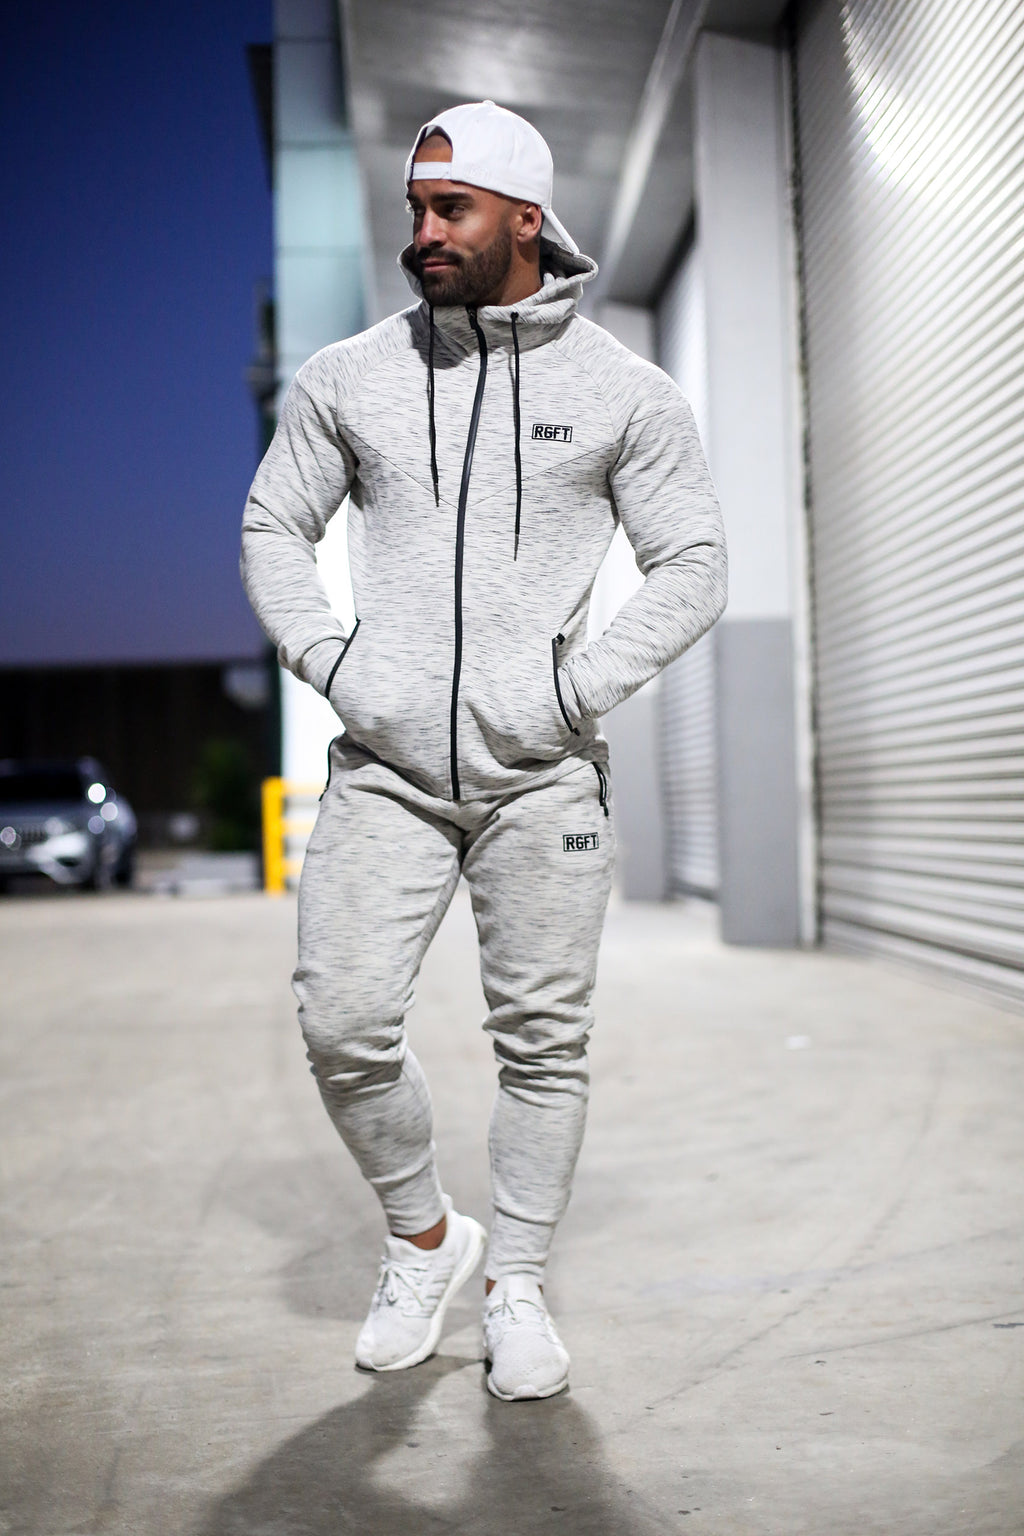 Grey RGFT Thermal Zip-Up Hoodie